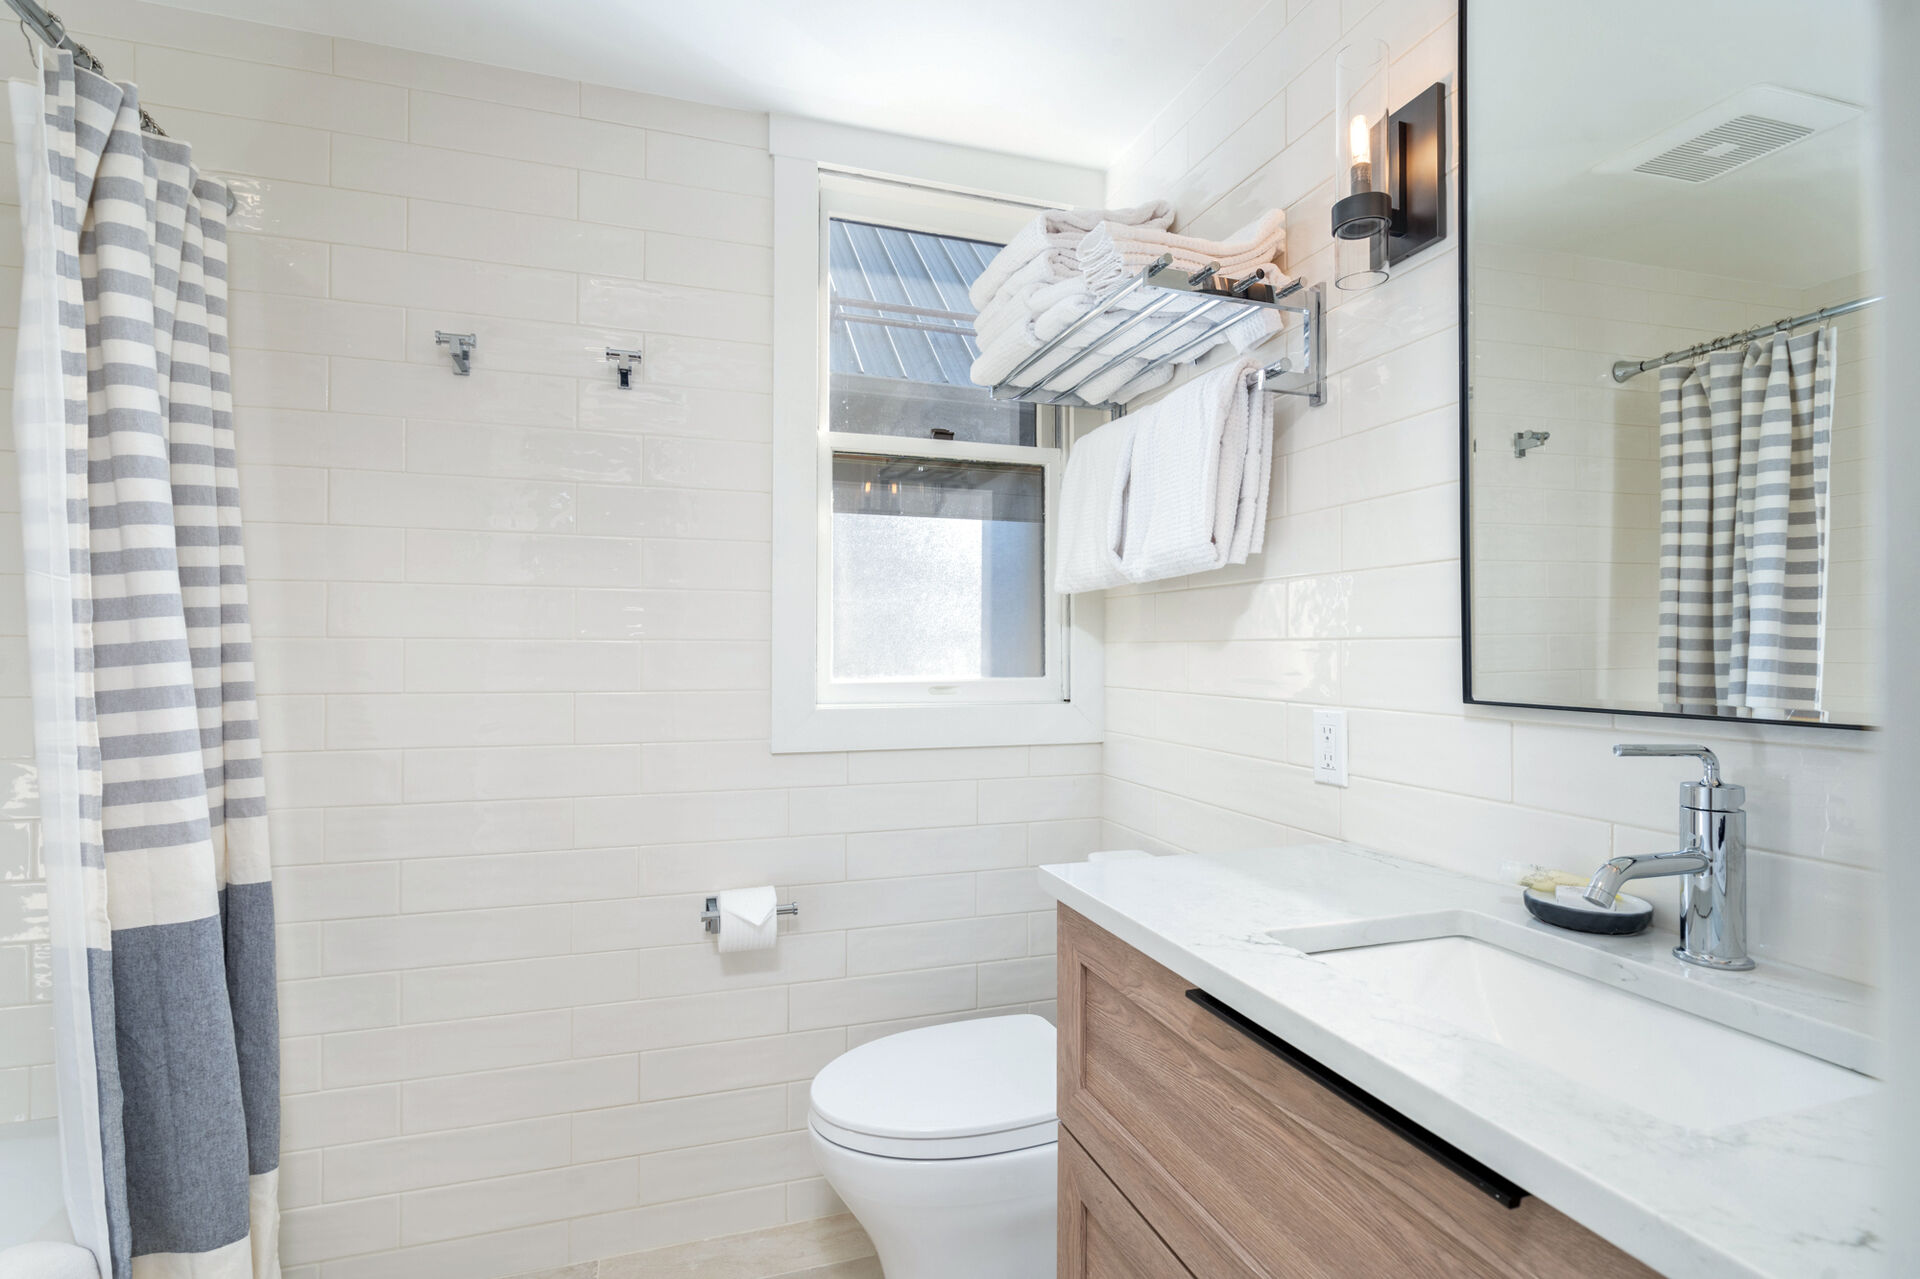 Guest bathroom with a sink and a toilet